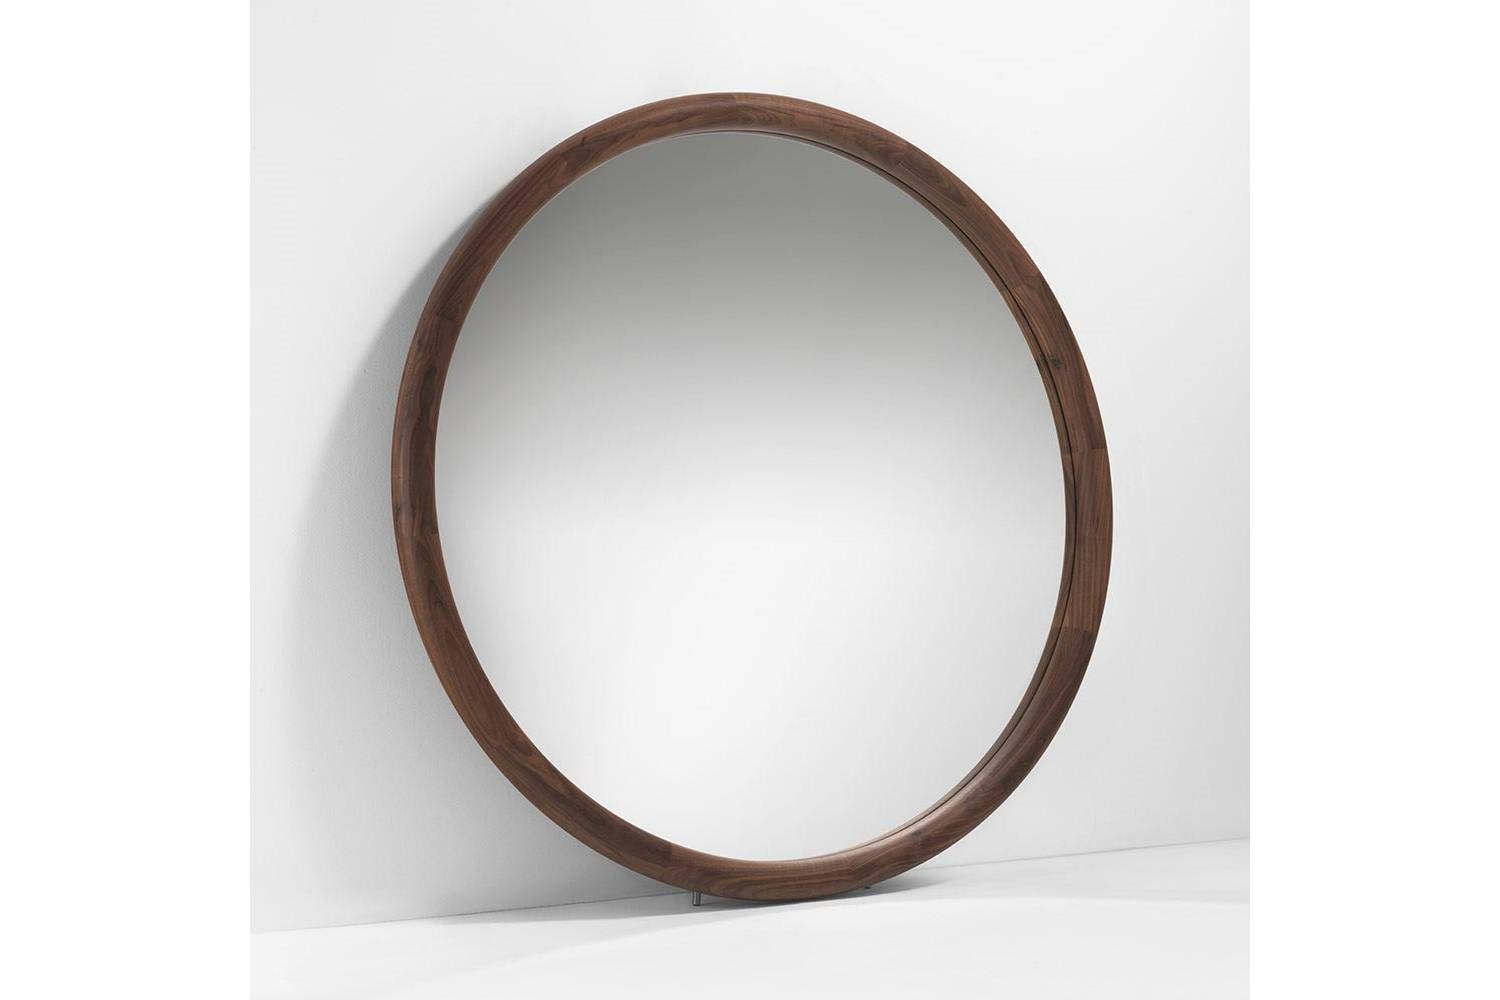 Giove Mirror by T. Colzani for Porada